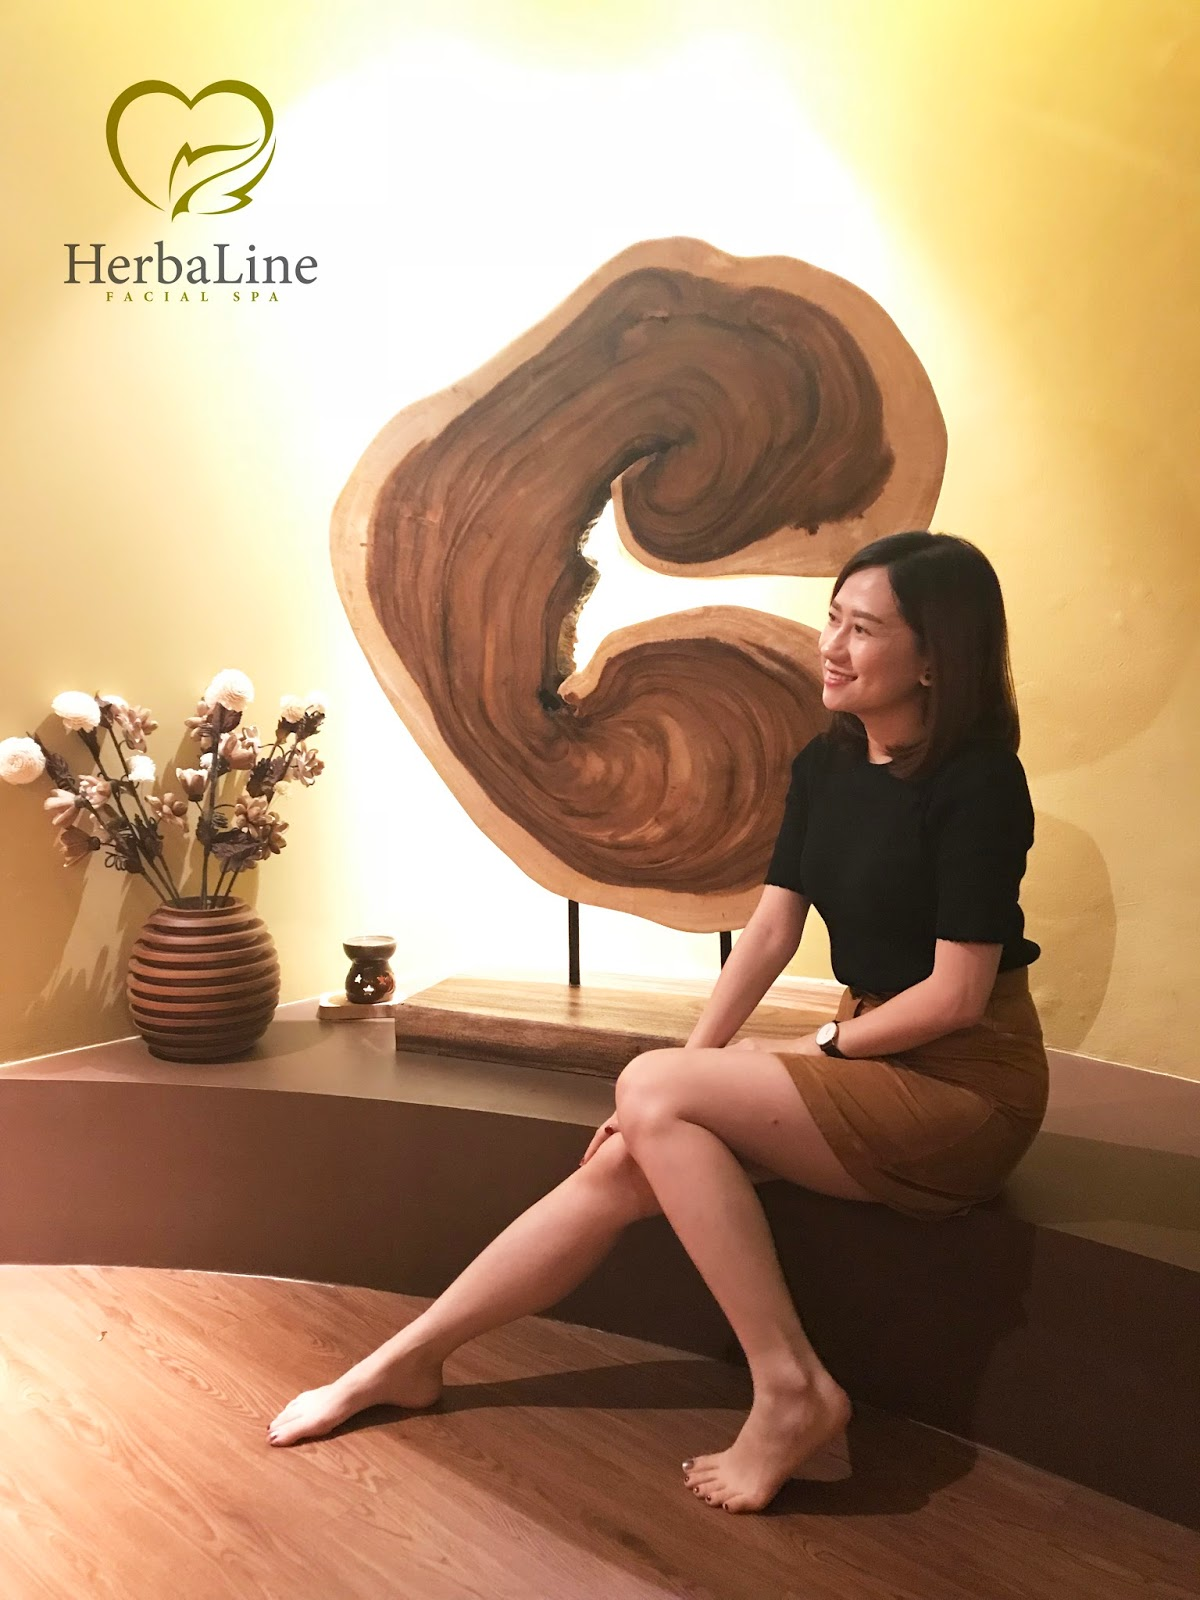 [Beauty Review] Experience 3-IN-1 services with HerbaLine's New Integrated Beauty & Wellness Outlet at Sri Hartamas, Kuala Lumpur